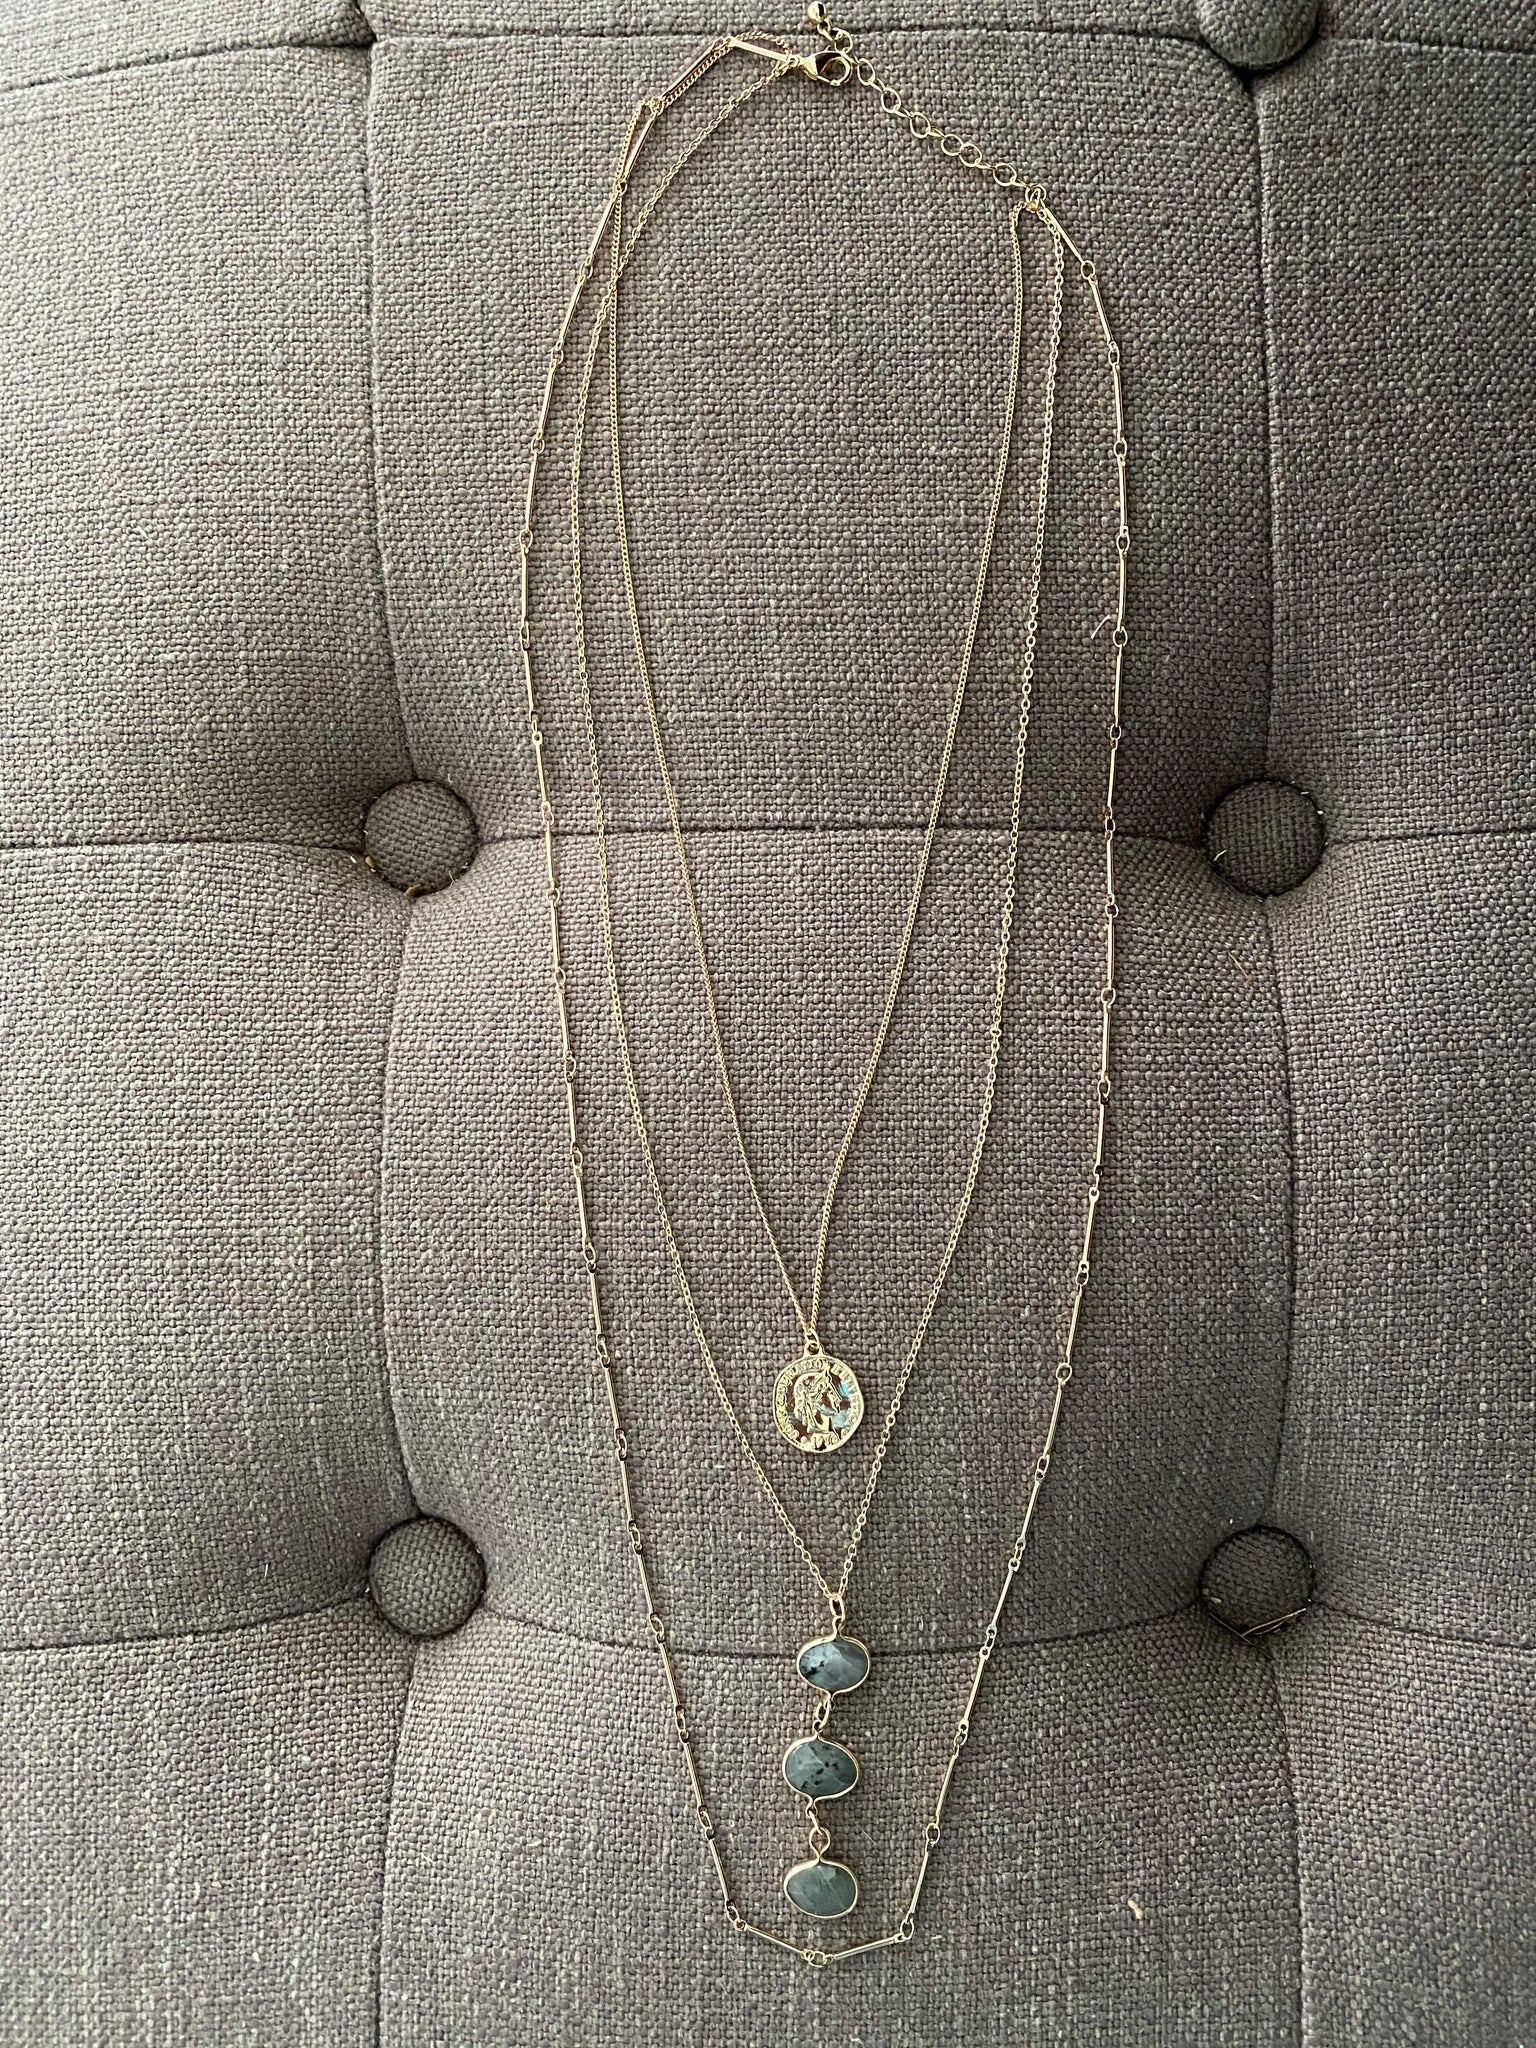 Triple Stone Layered Necklace